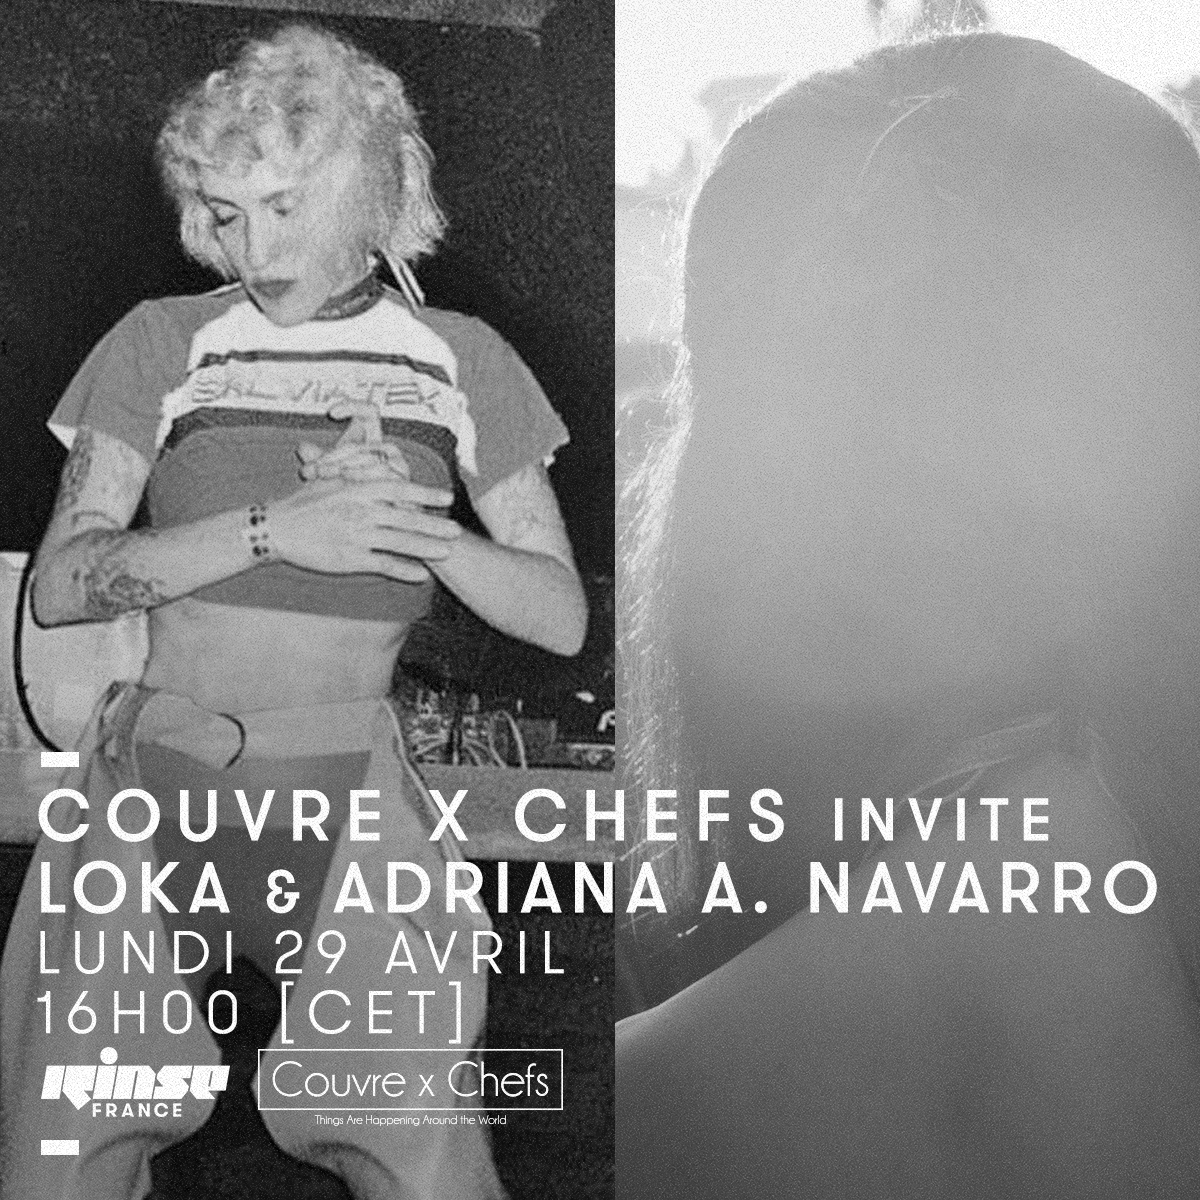 rinse france loka adriana a navarro couvre x chefs.png